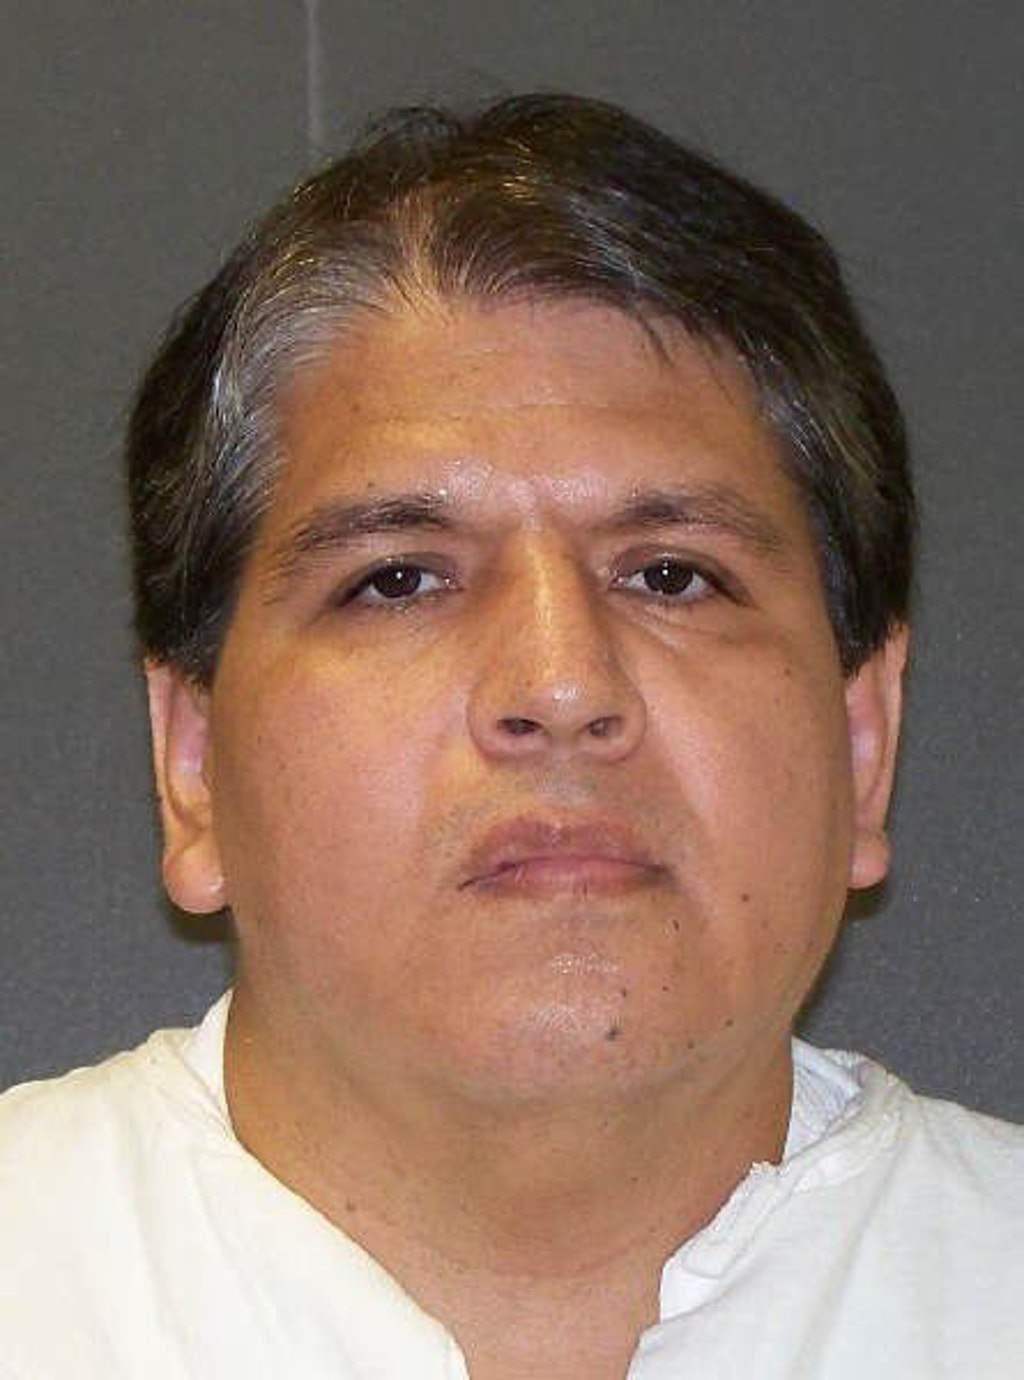 Texas Set to Execute Mexican National Despite Treaty Violations, Innocence Claim